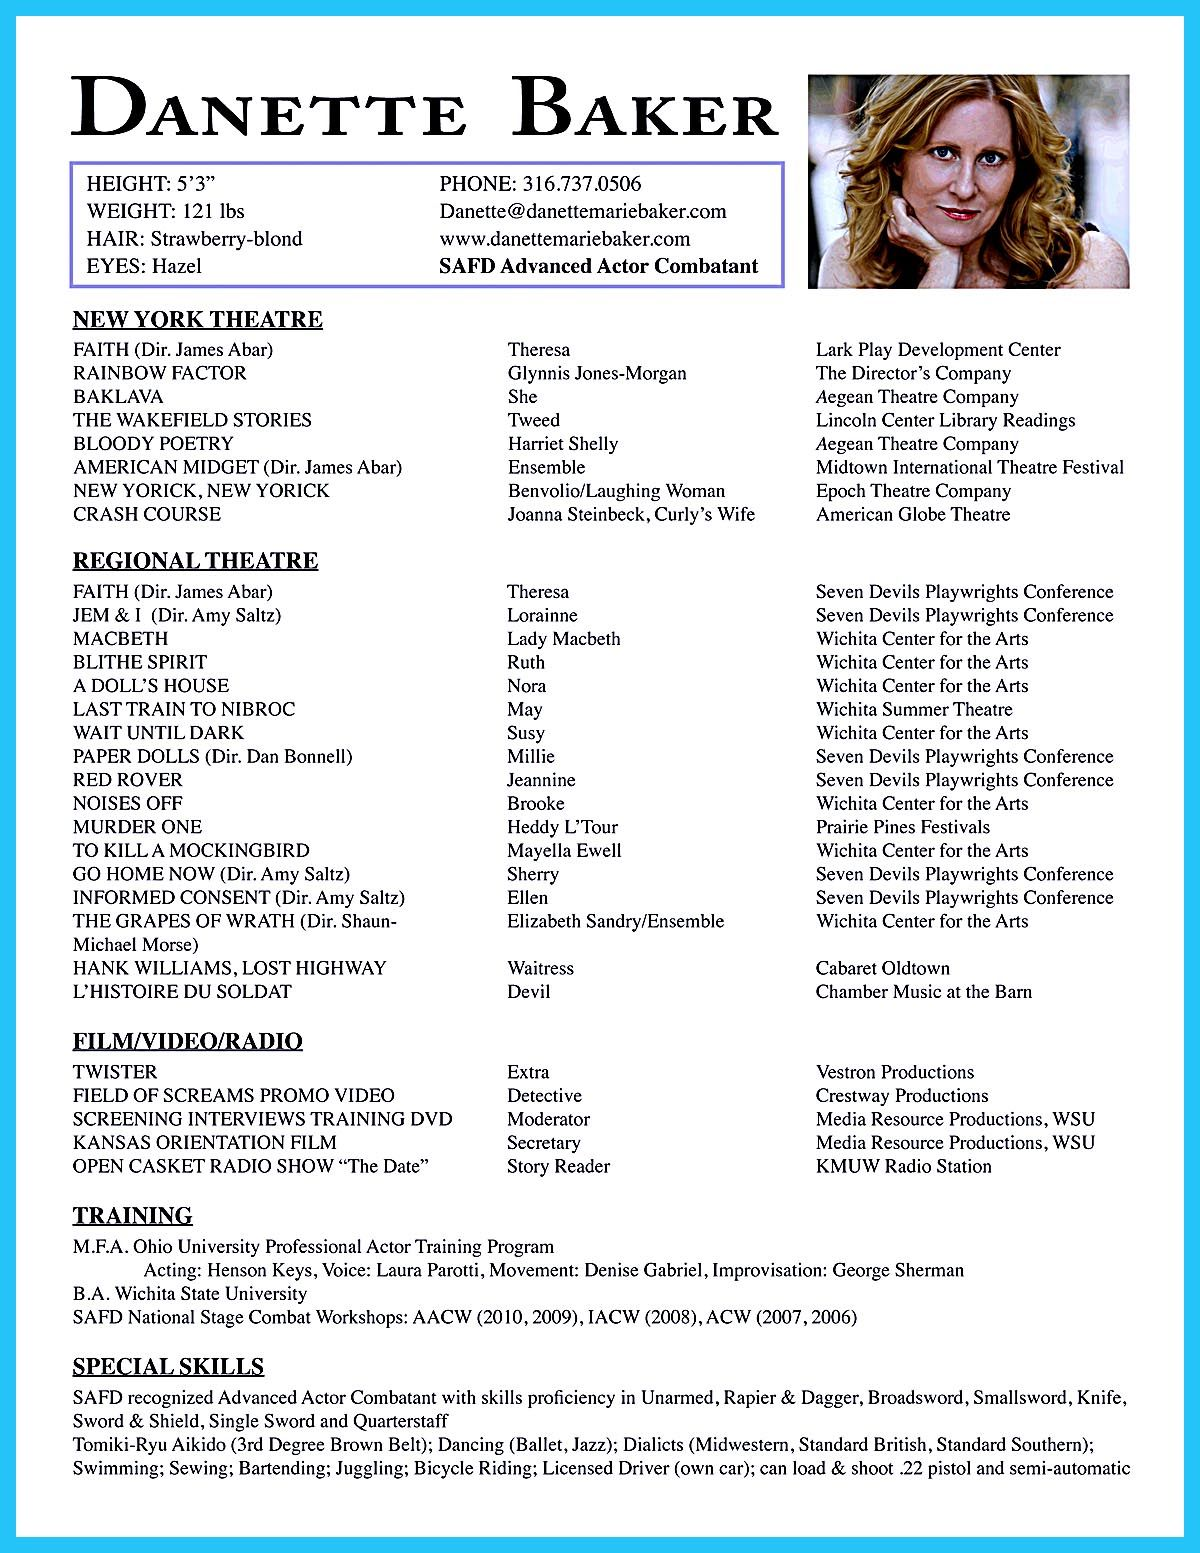 Theatre Resume Template Actor Resume Is Indeed Hard To Makebut It Doesn't Mean You